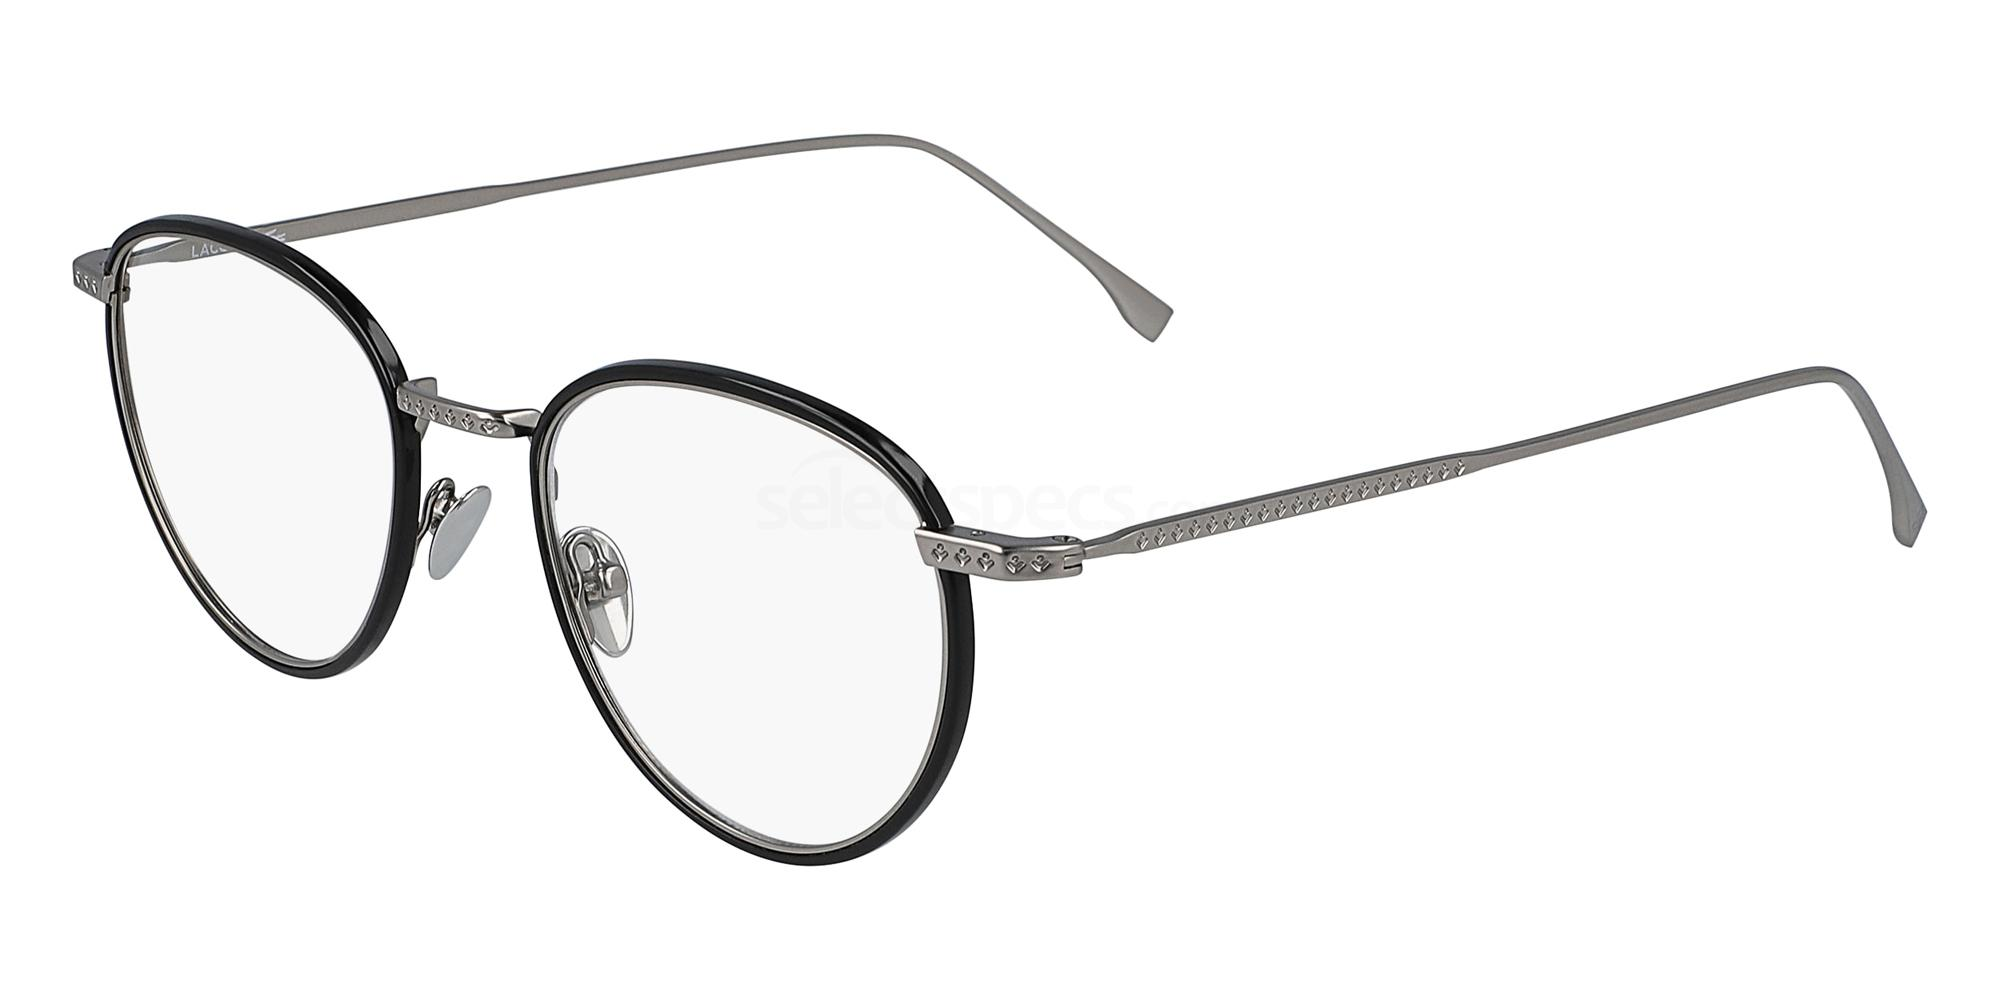 001 L2602ND Glasses, Lacoste